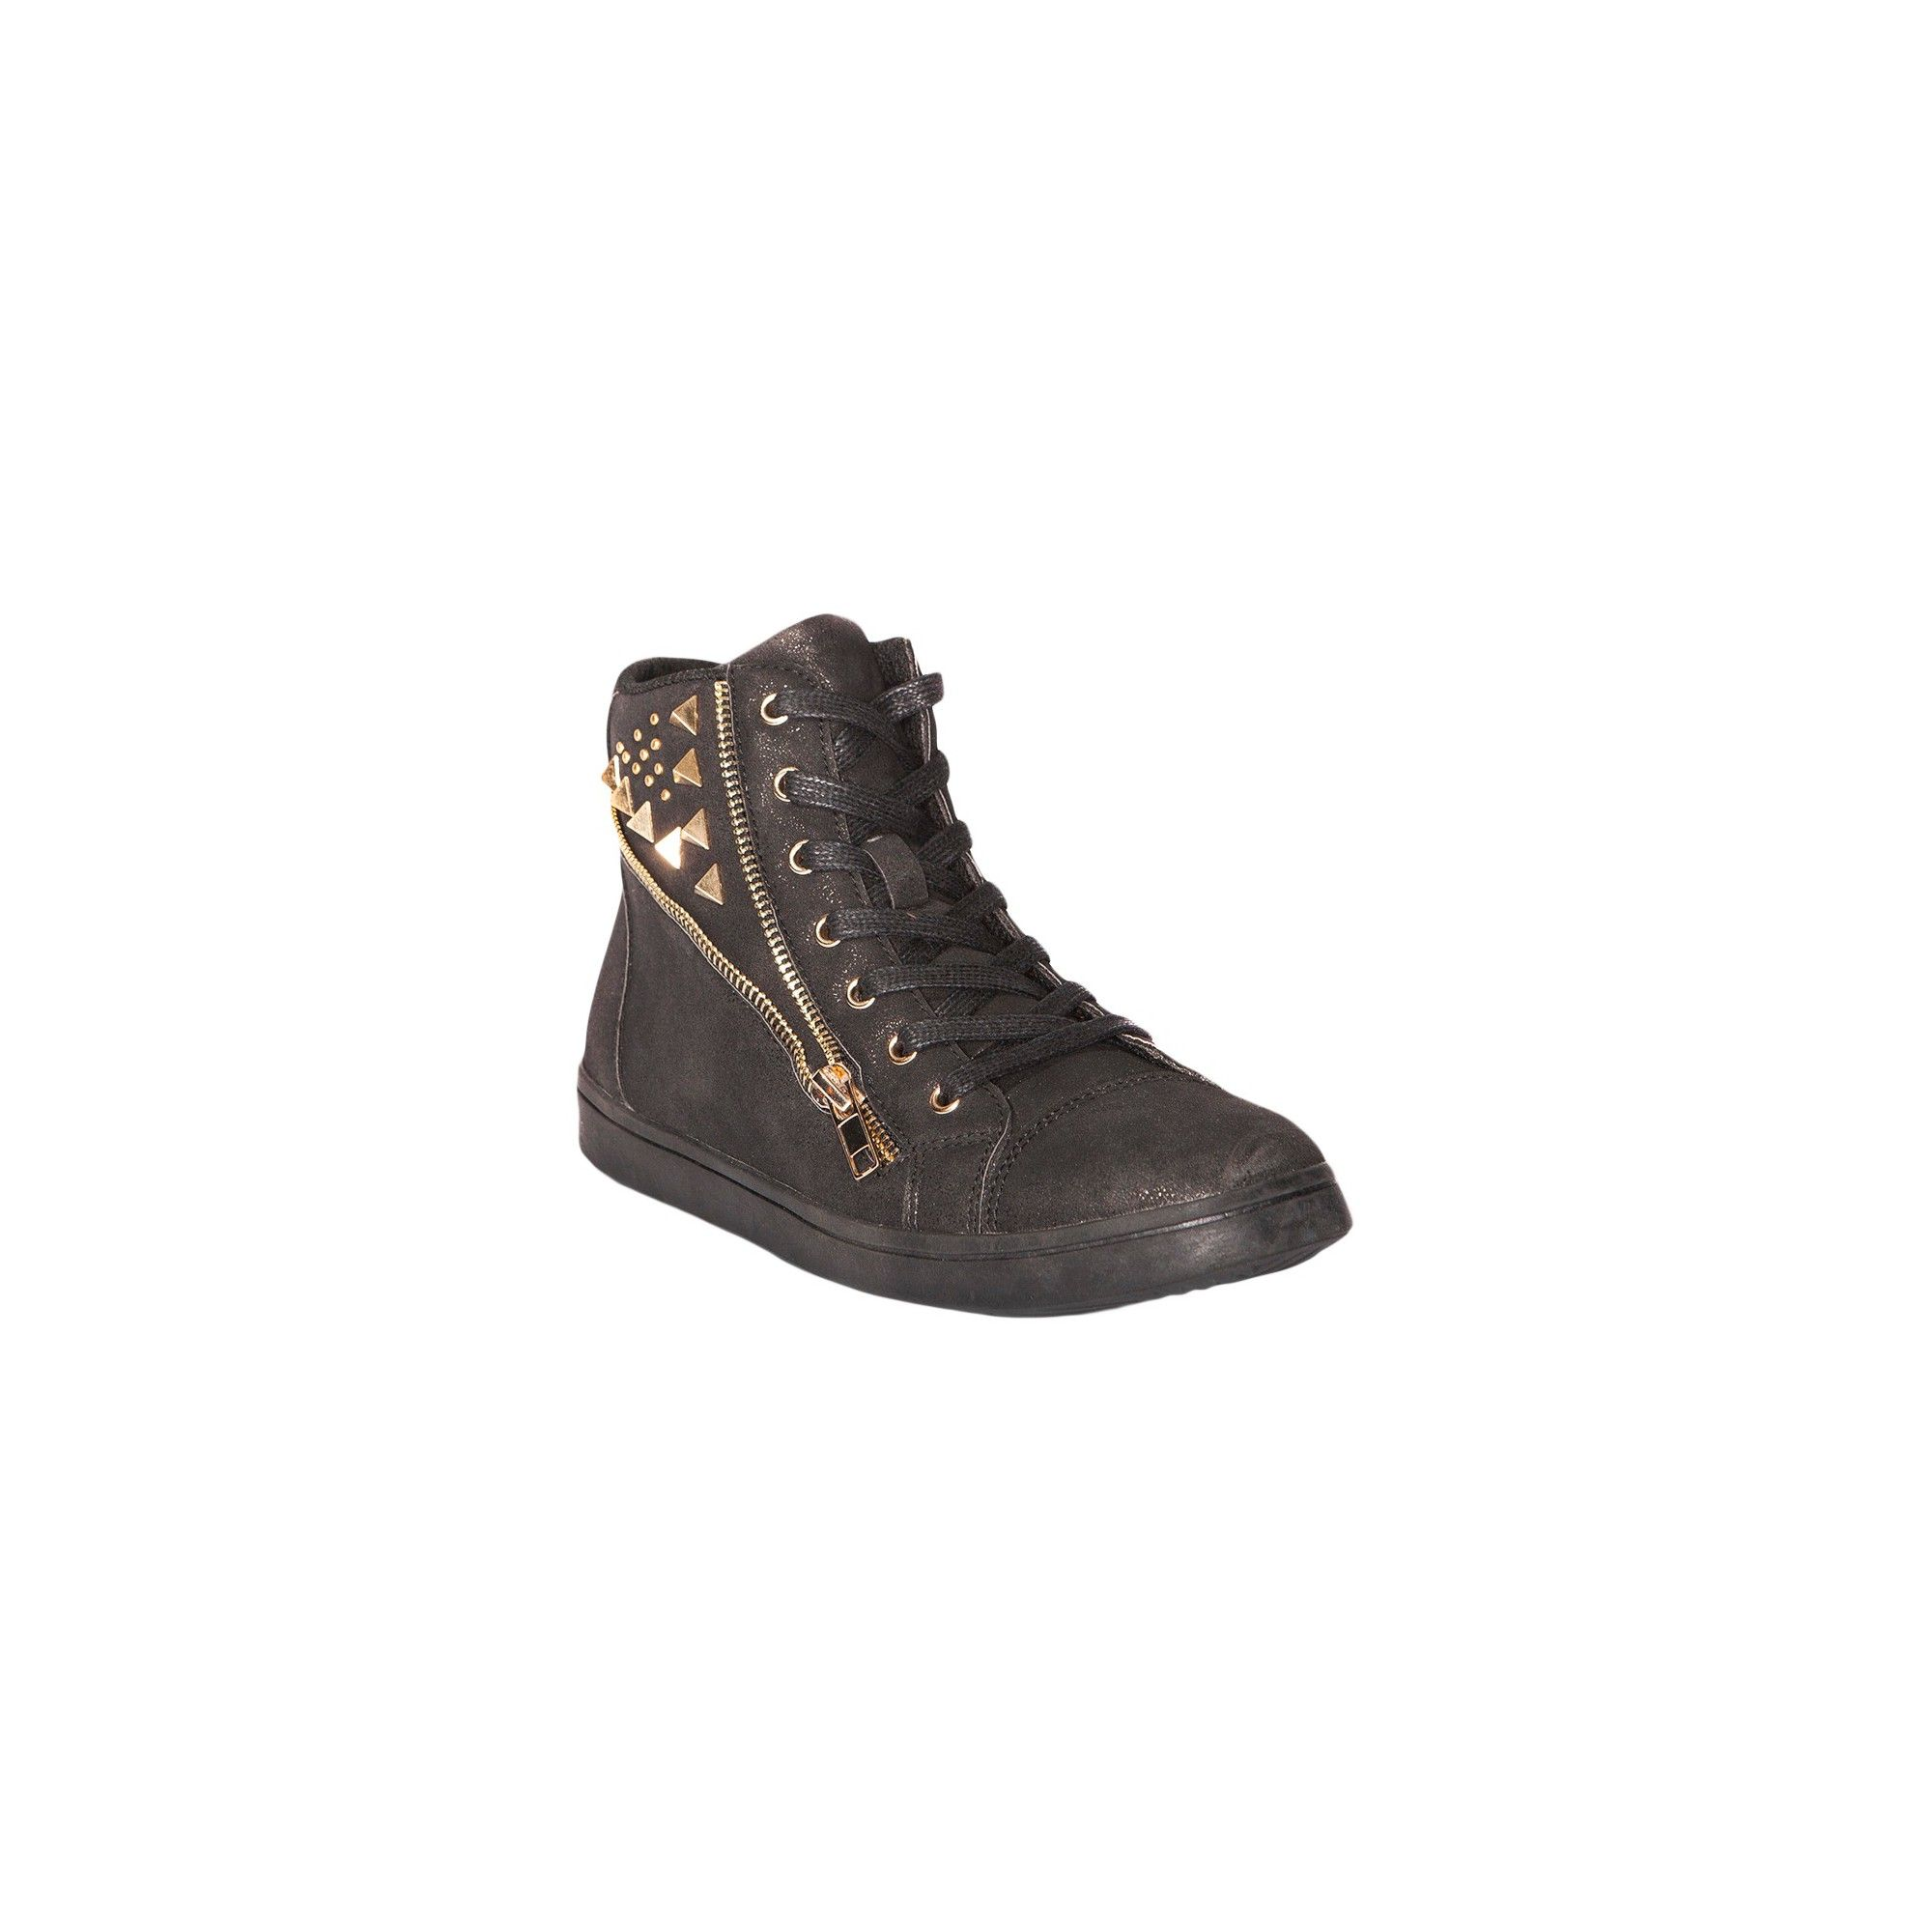 High Quality Designer Gia-Mia Women's Studded Sneakers